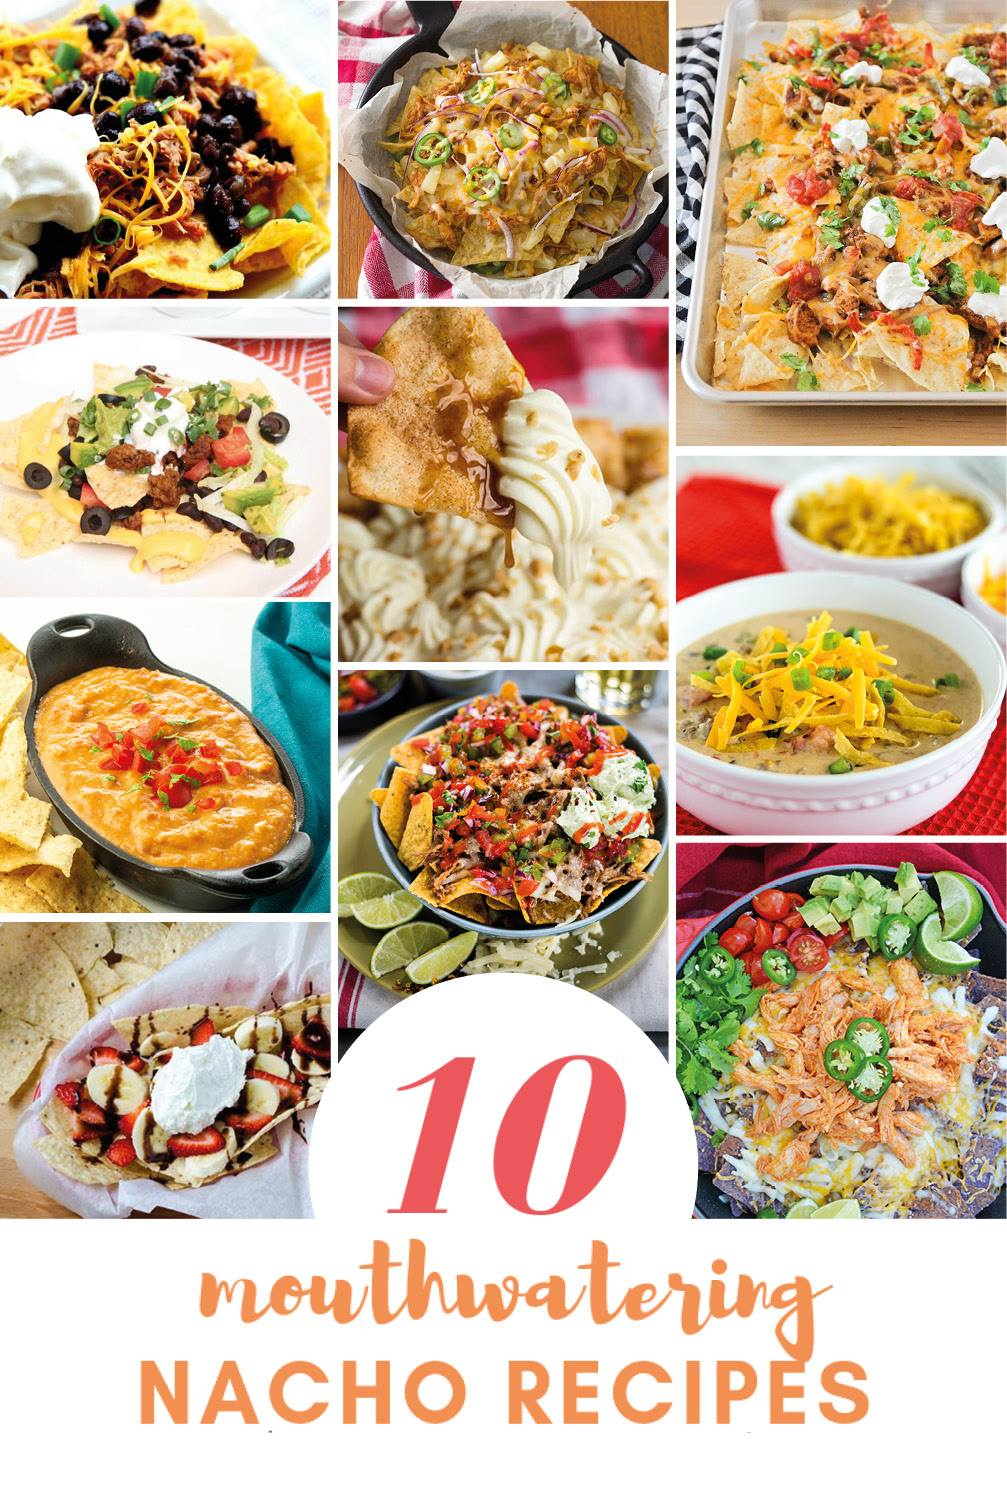 10 mouthwatering nacho recipes, perfect for celebrating National Nacho Day!